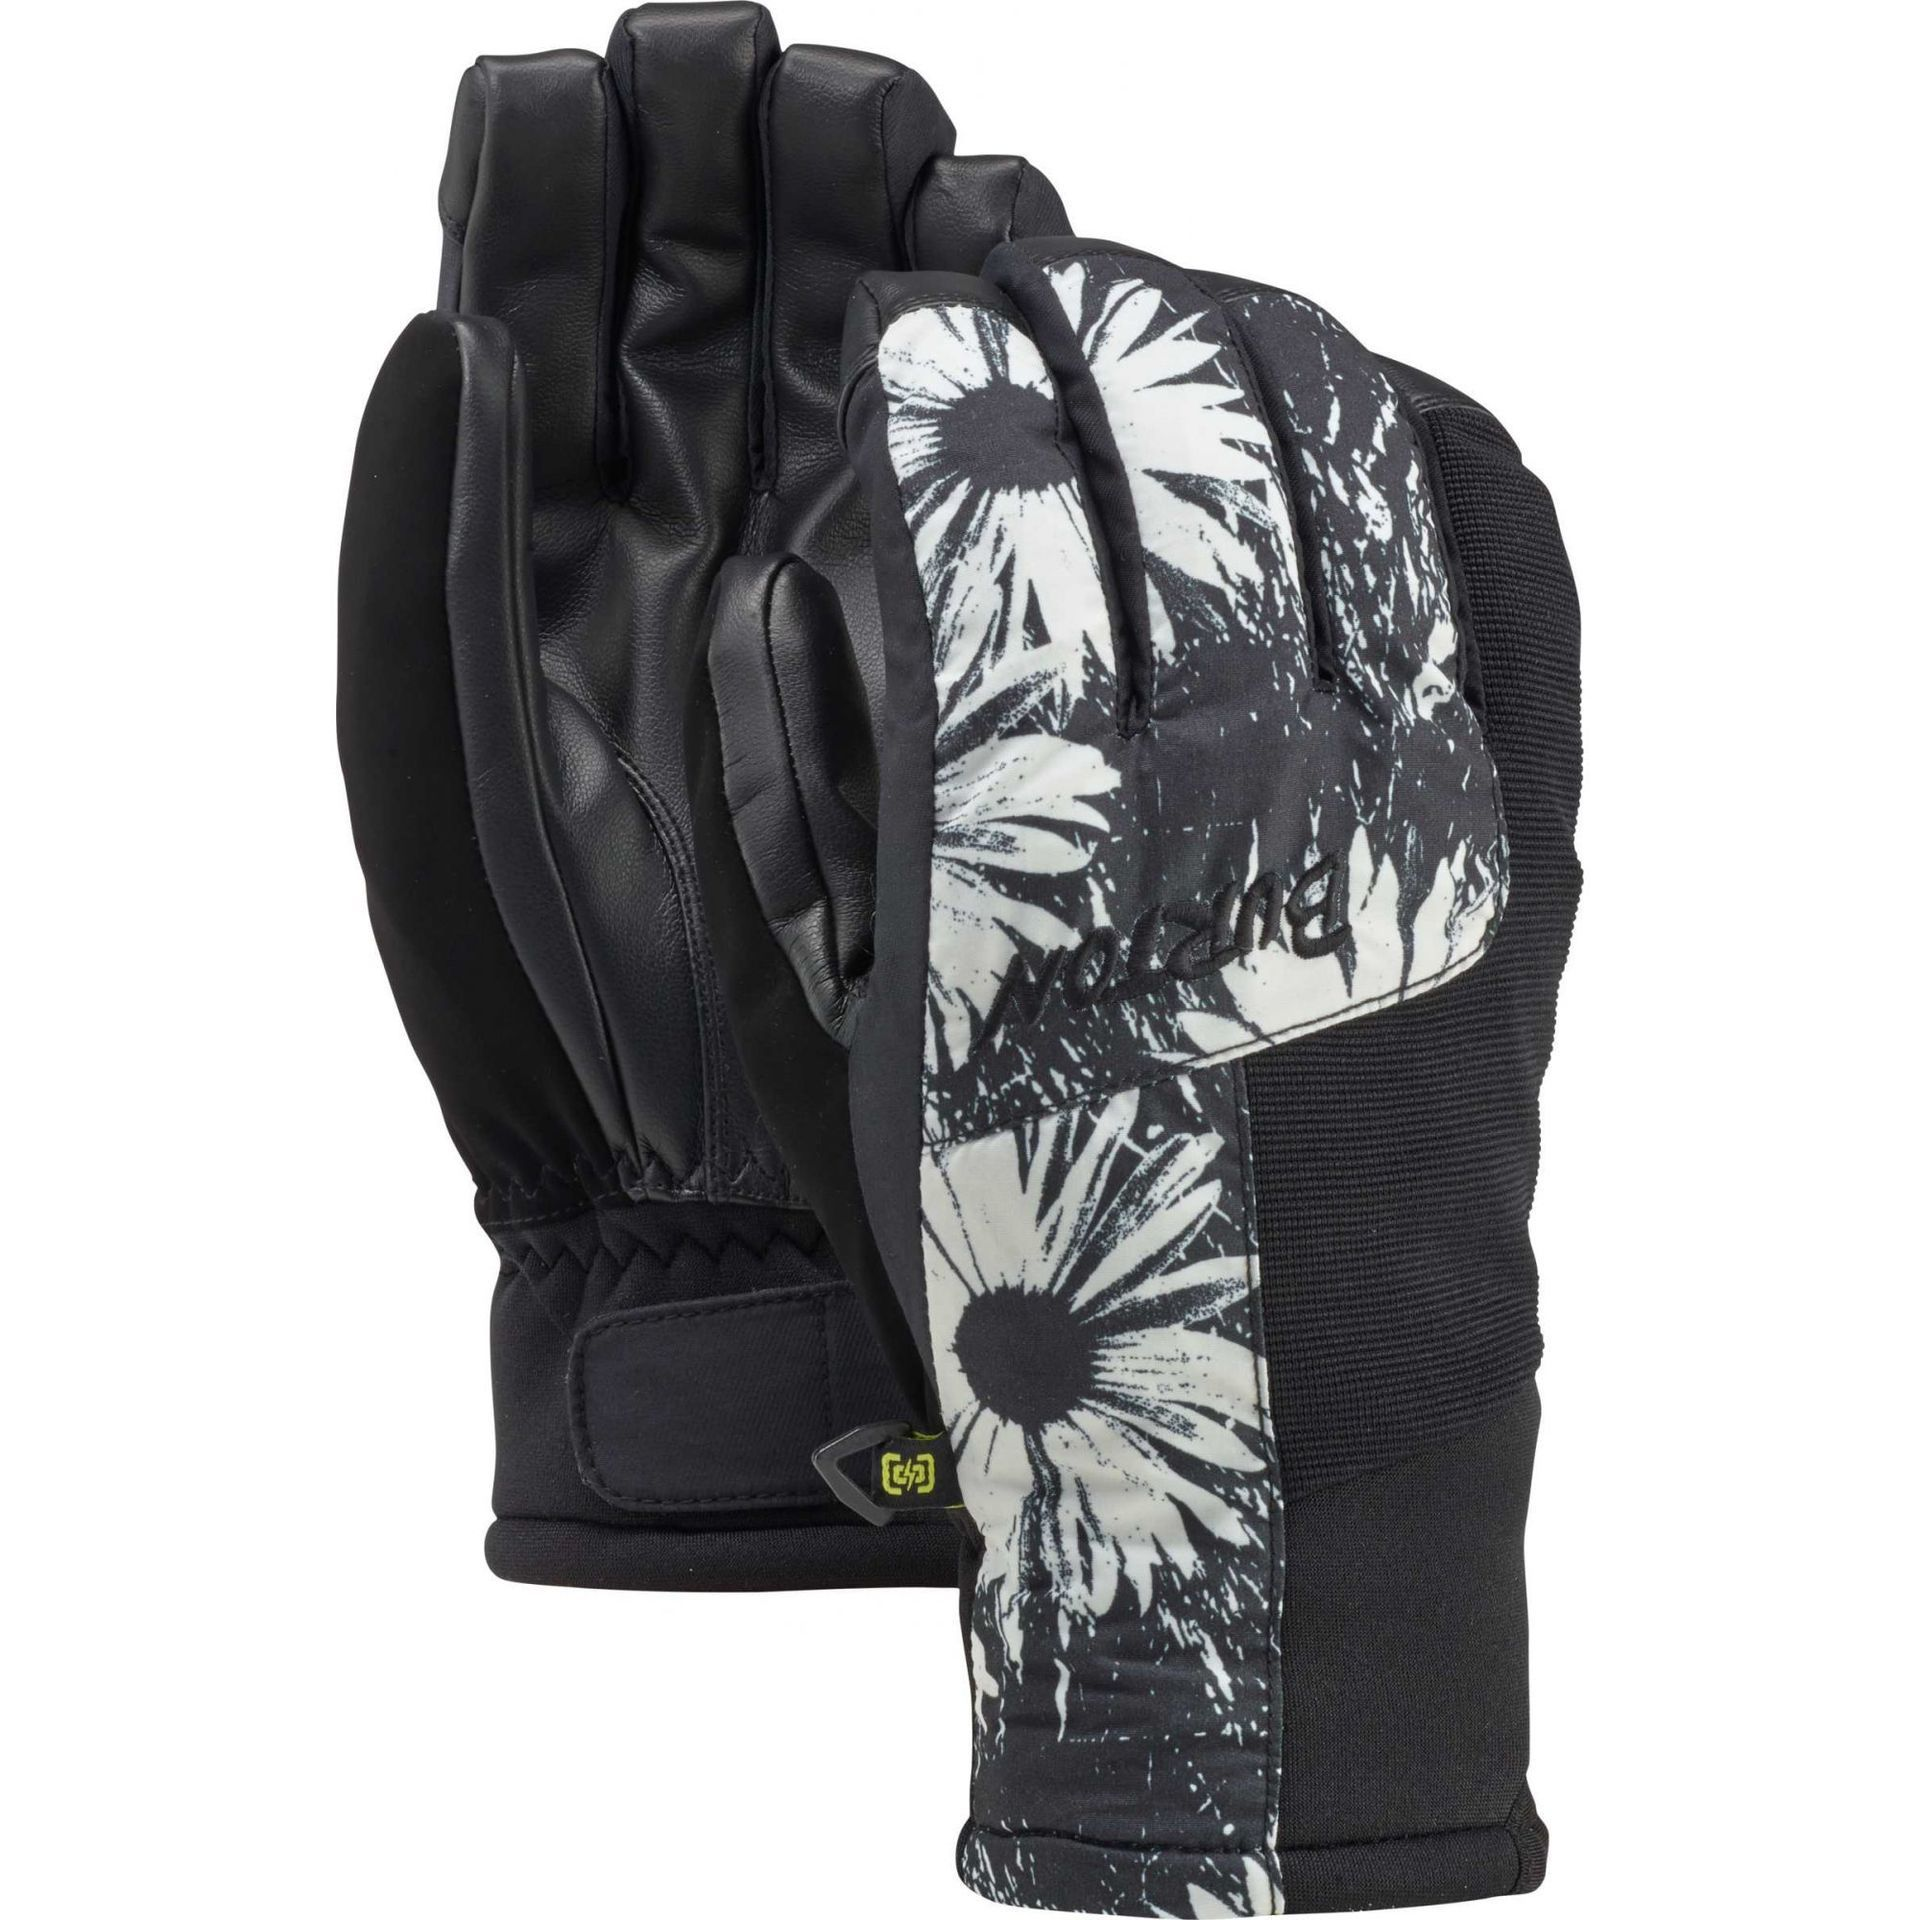 RĘKAWICE BURTON EMPIRE GORE TEX GLOVE 108 1